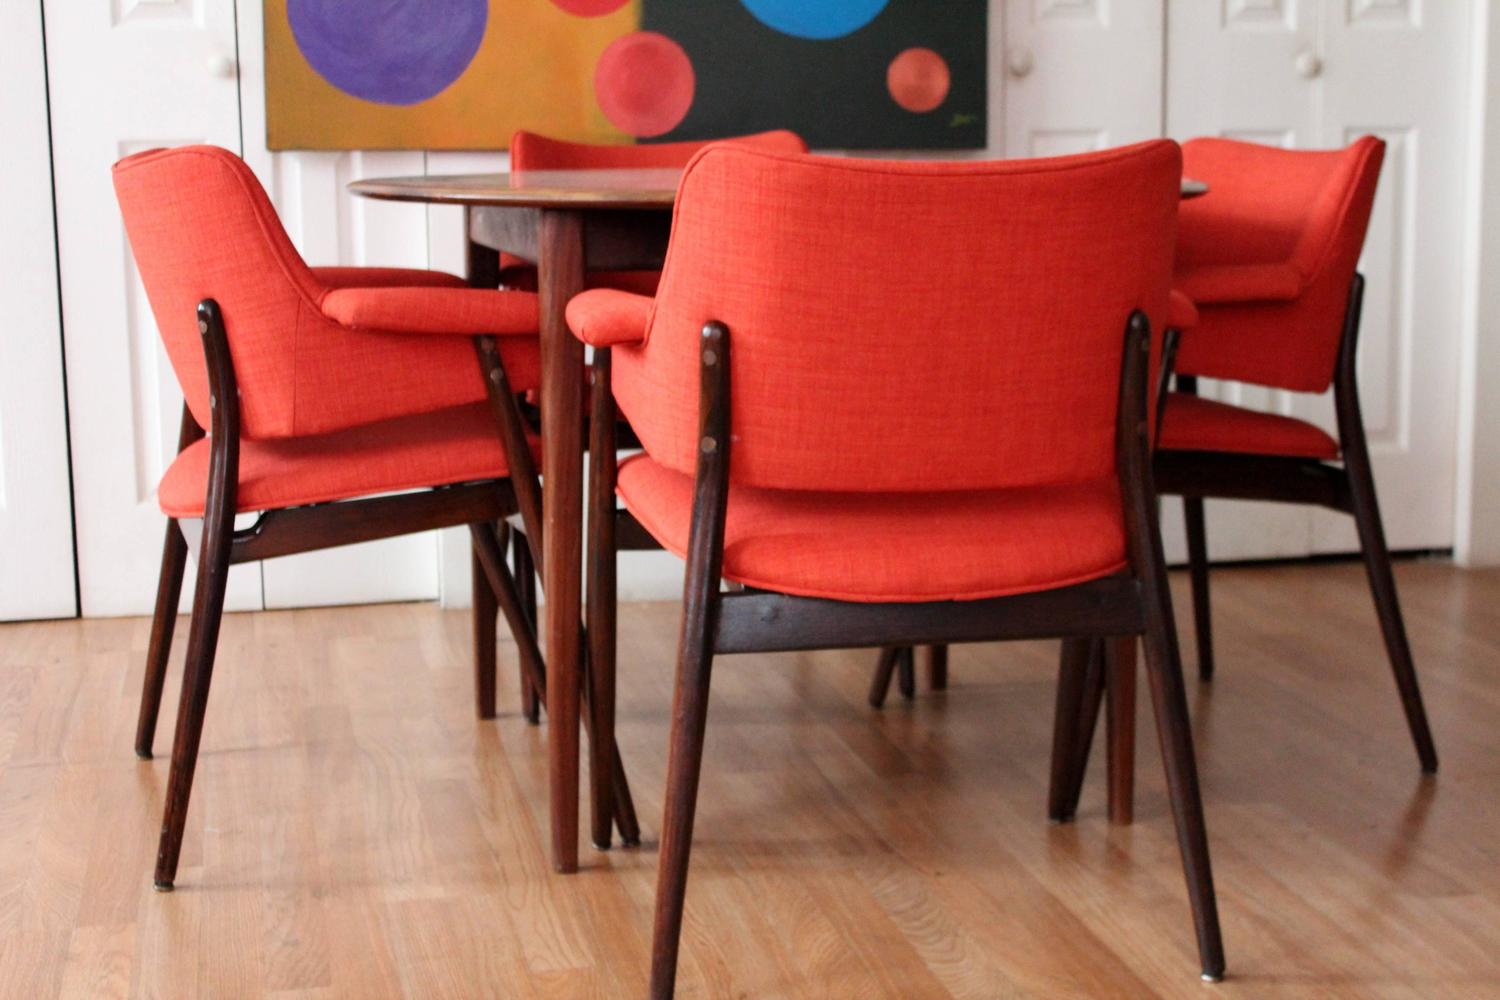 modern orange chair cheapest folding chairs reupholstered mid century walnut dining